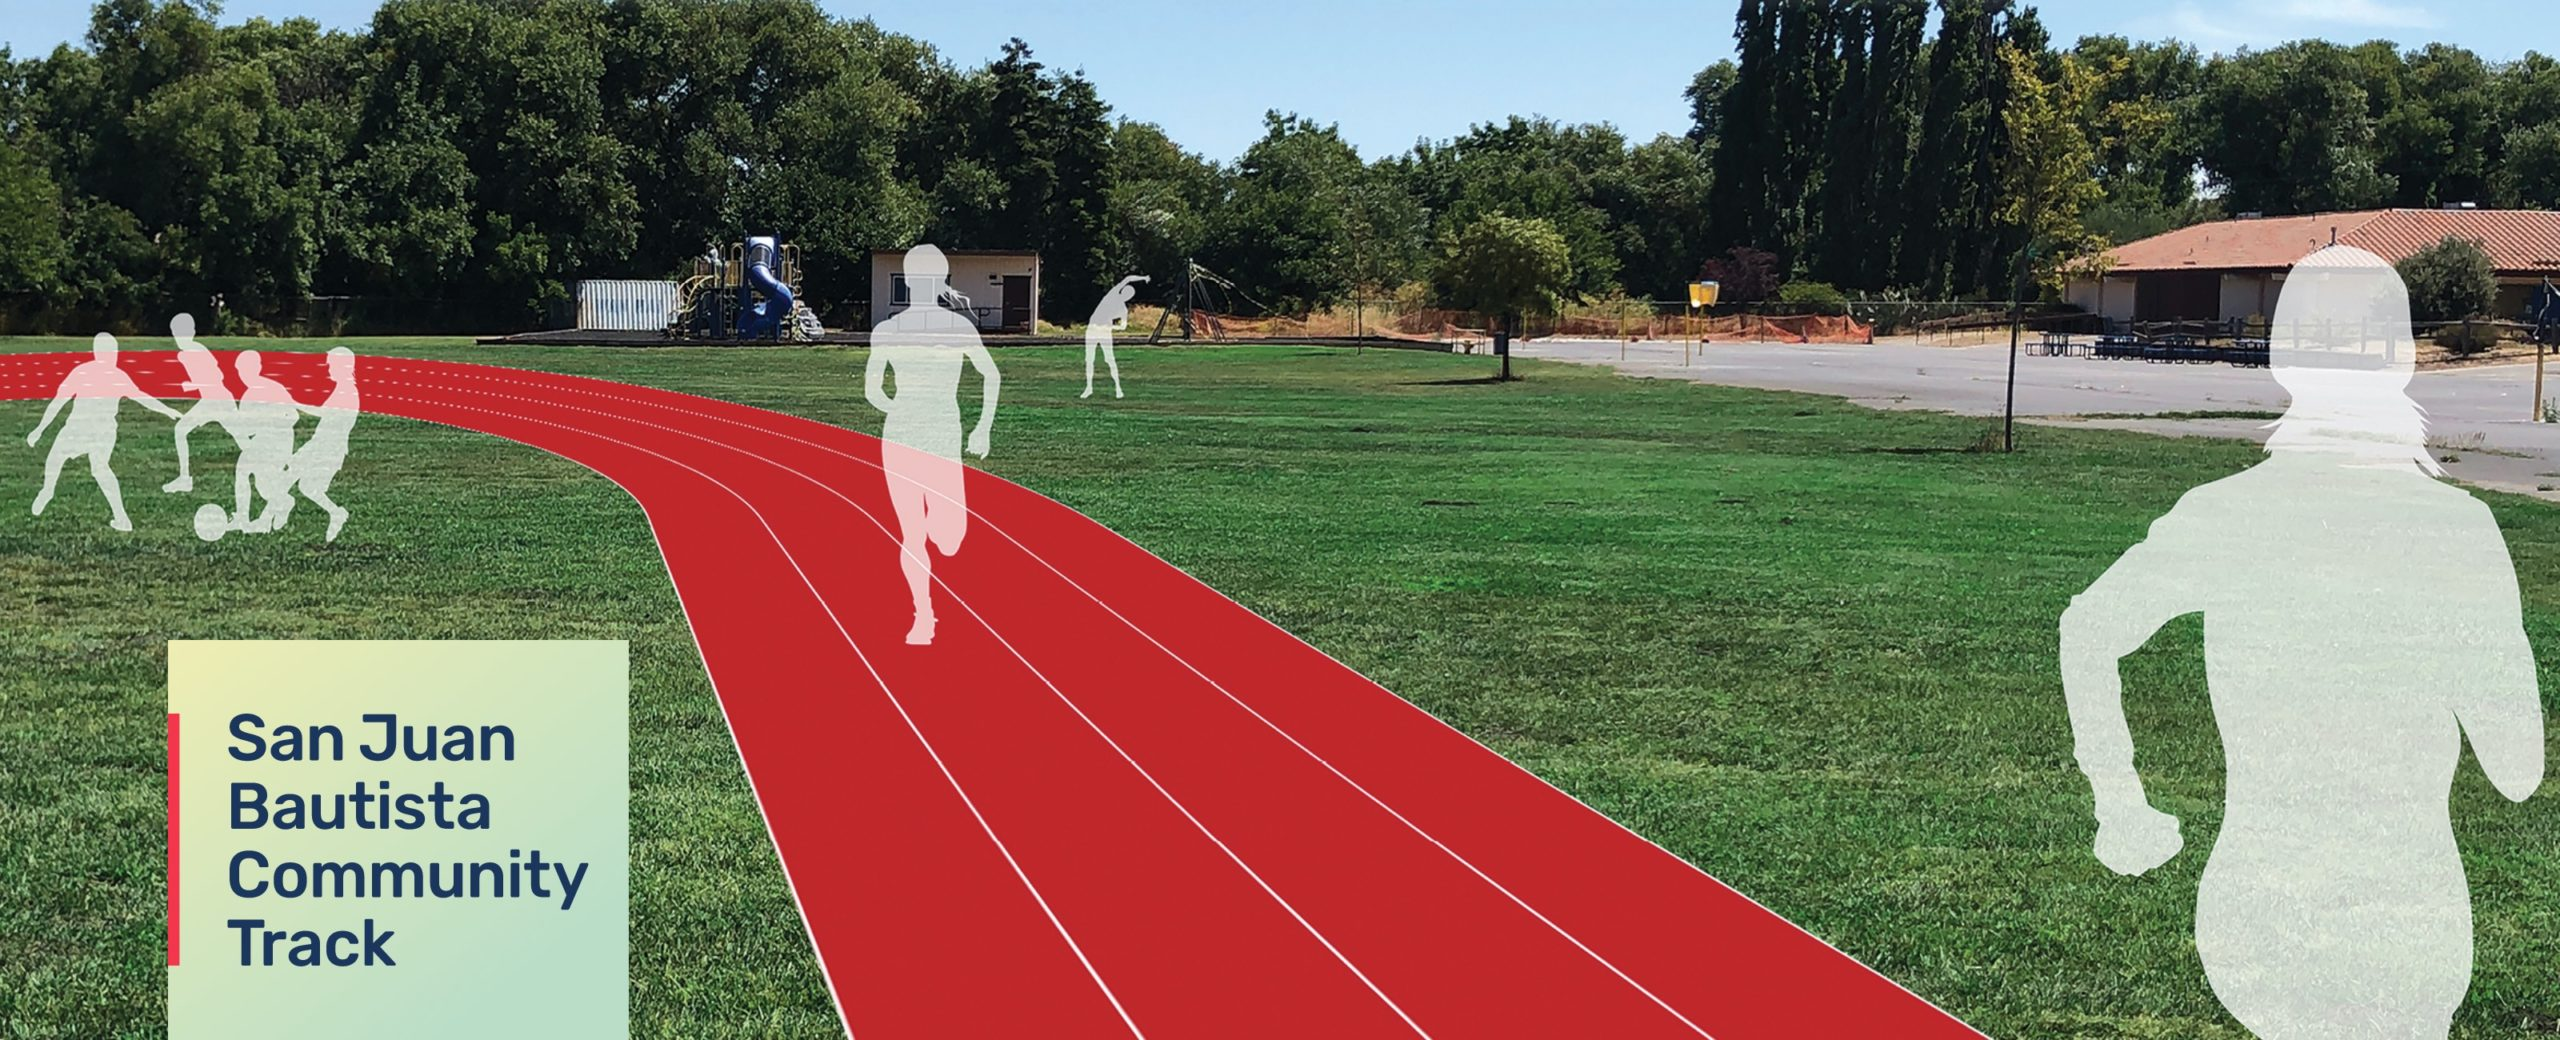 Running track rendering with logo